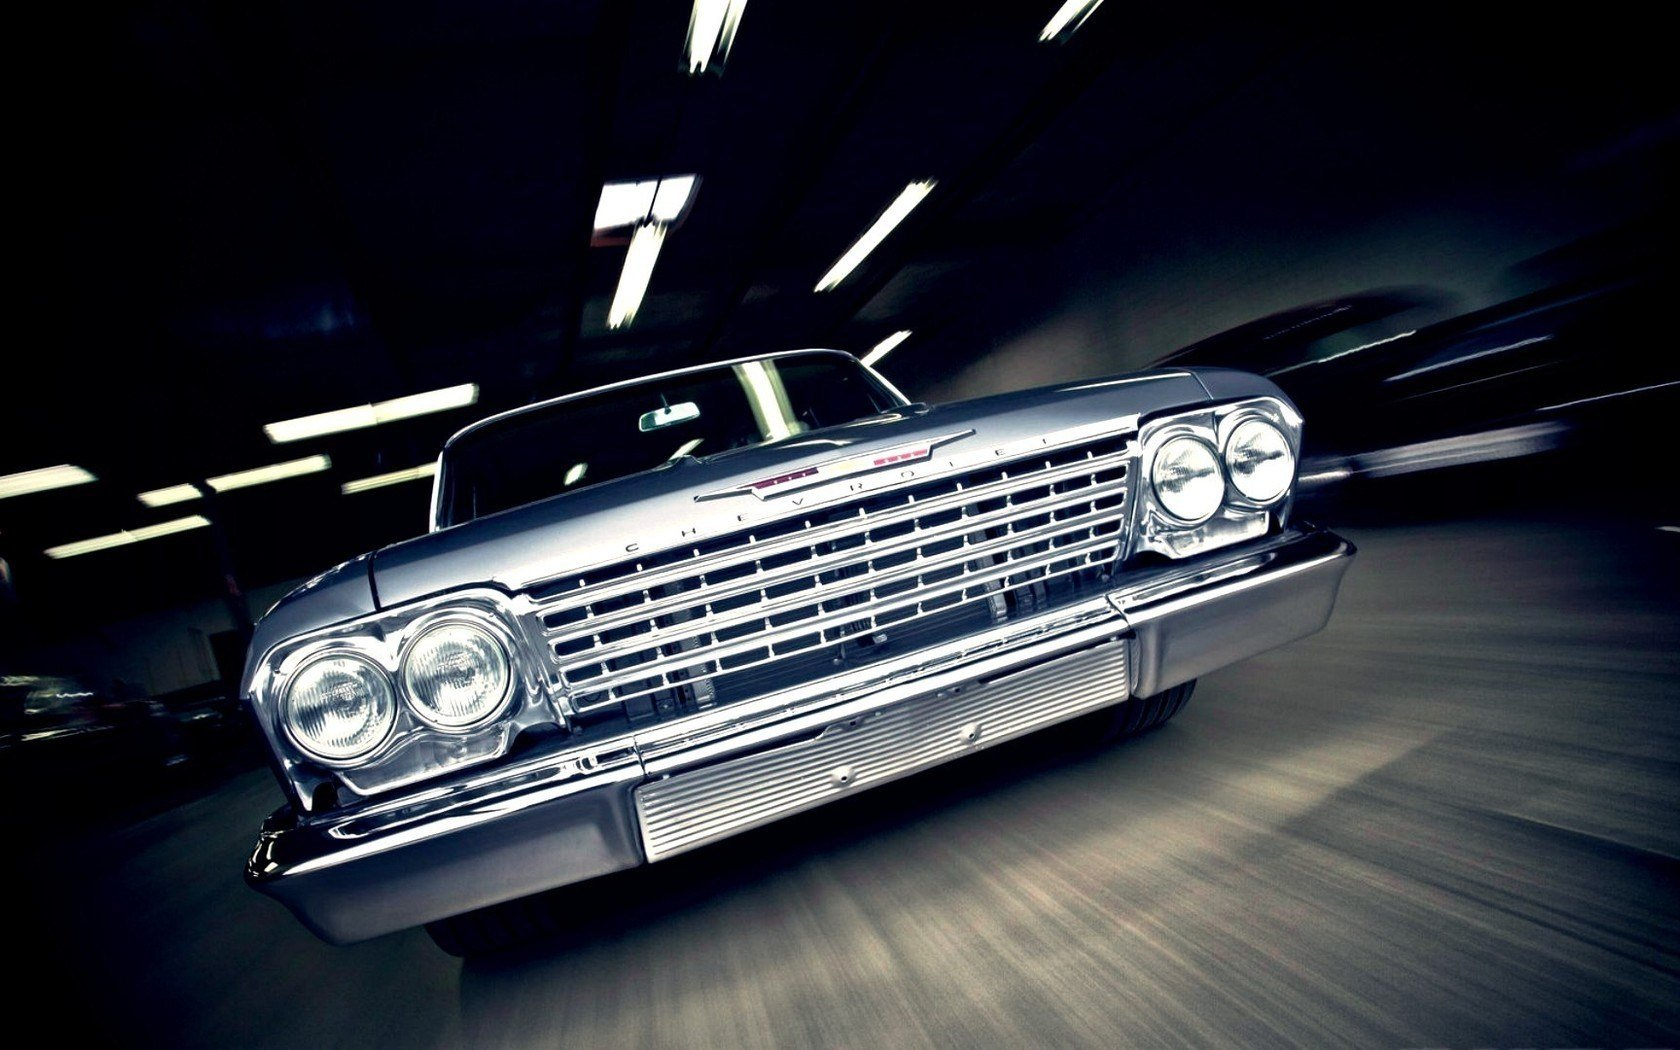 New Twin Turbo Ls9 1962 Chevrolet Bel Air Wallpaper And On This Month